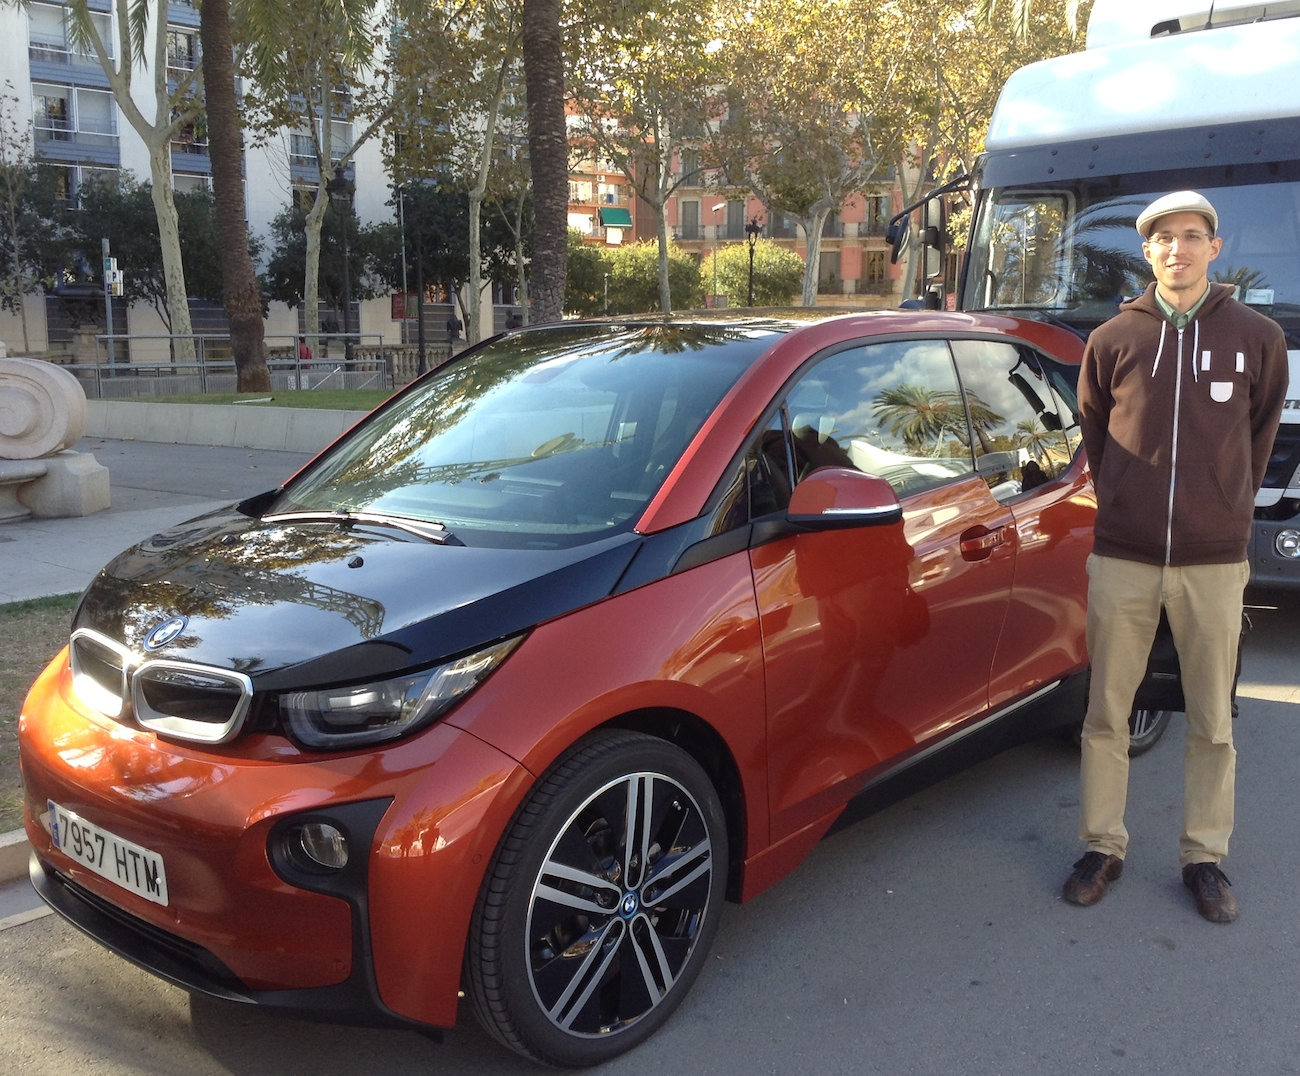 BMW i3 and me at Arc de Triompf in Barcelona, Spain.(This image is available for republishing and even modification under a CC BY-SA license, with the key requirement being that credit be given to Zachary Shahan / EV Obsession / CleanTechnica, and that those links not be removed.)